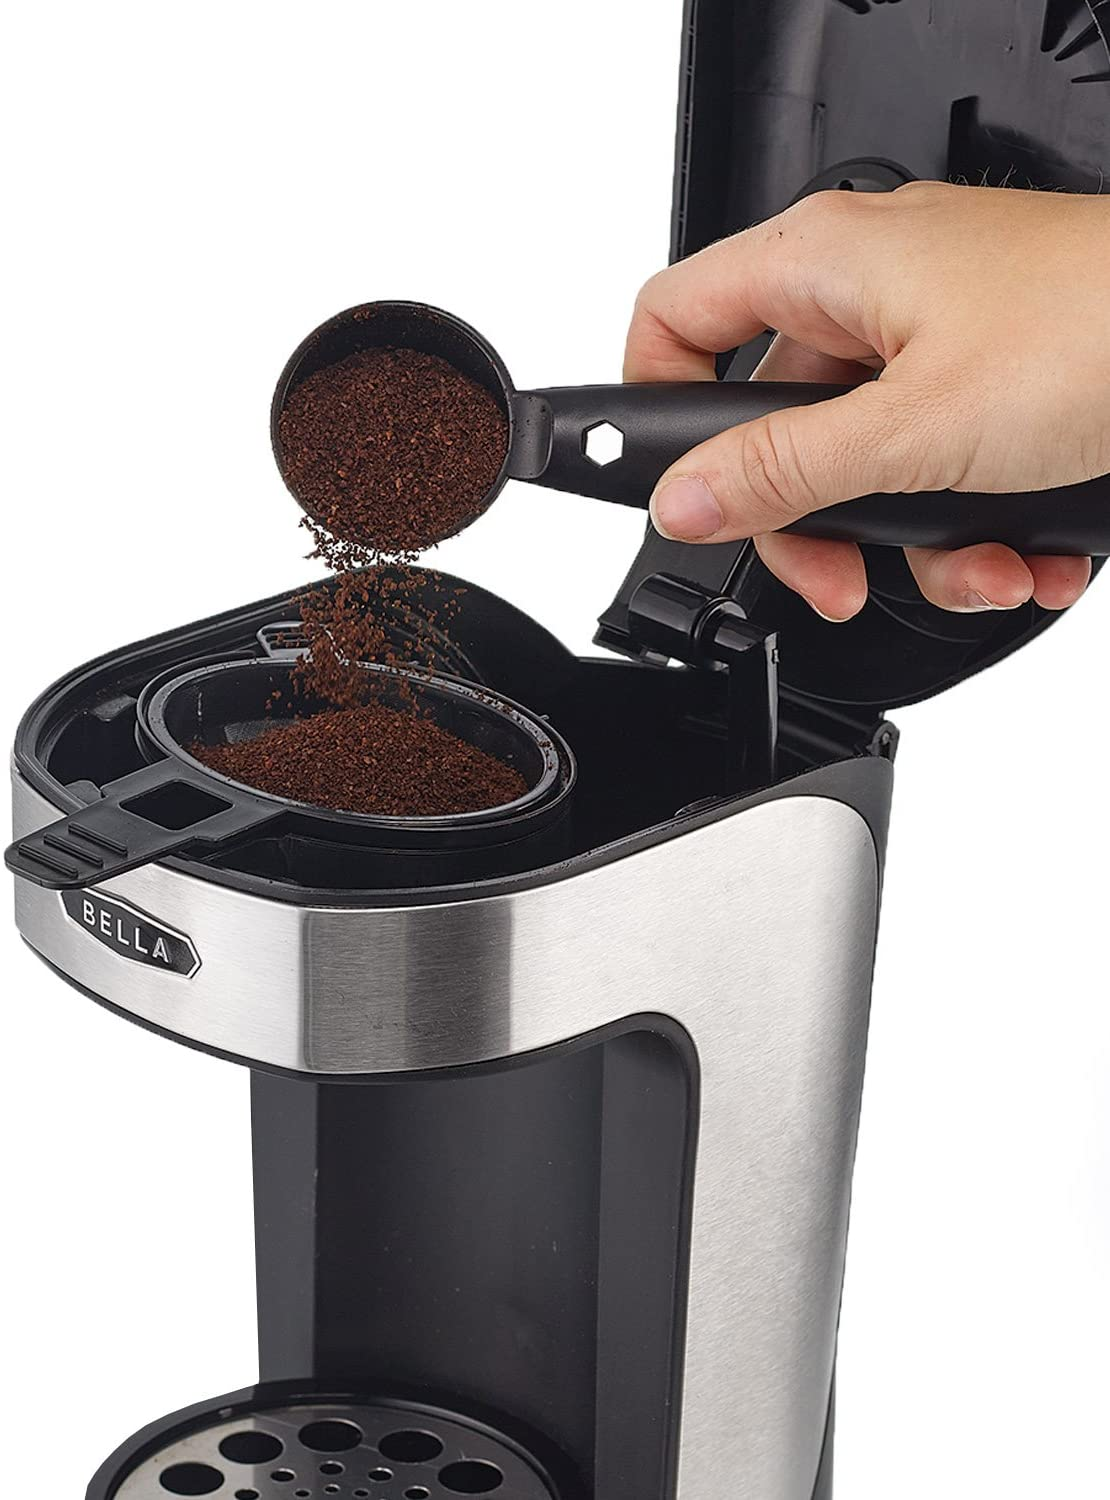 BELLA 14436 One Scoop One Cup Coffee Maker, Black and Stainless Steel